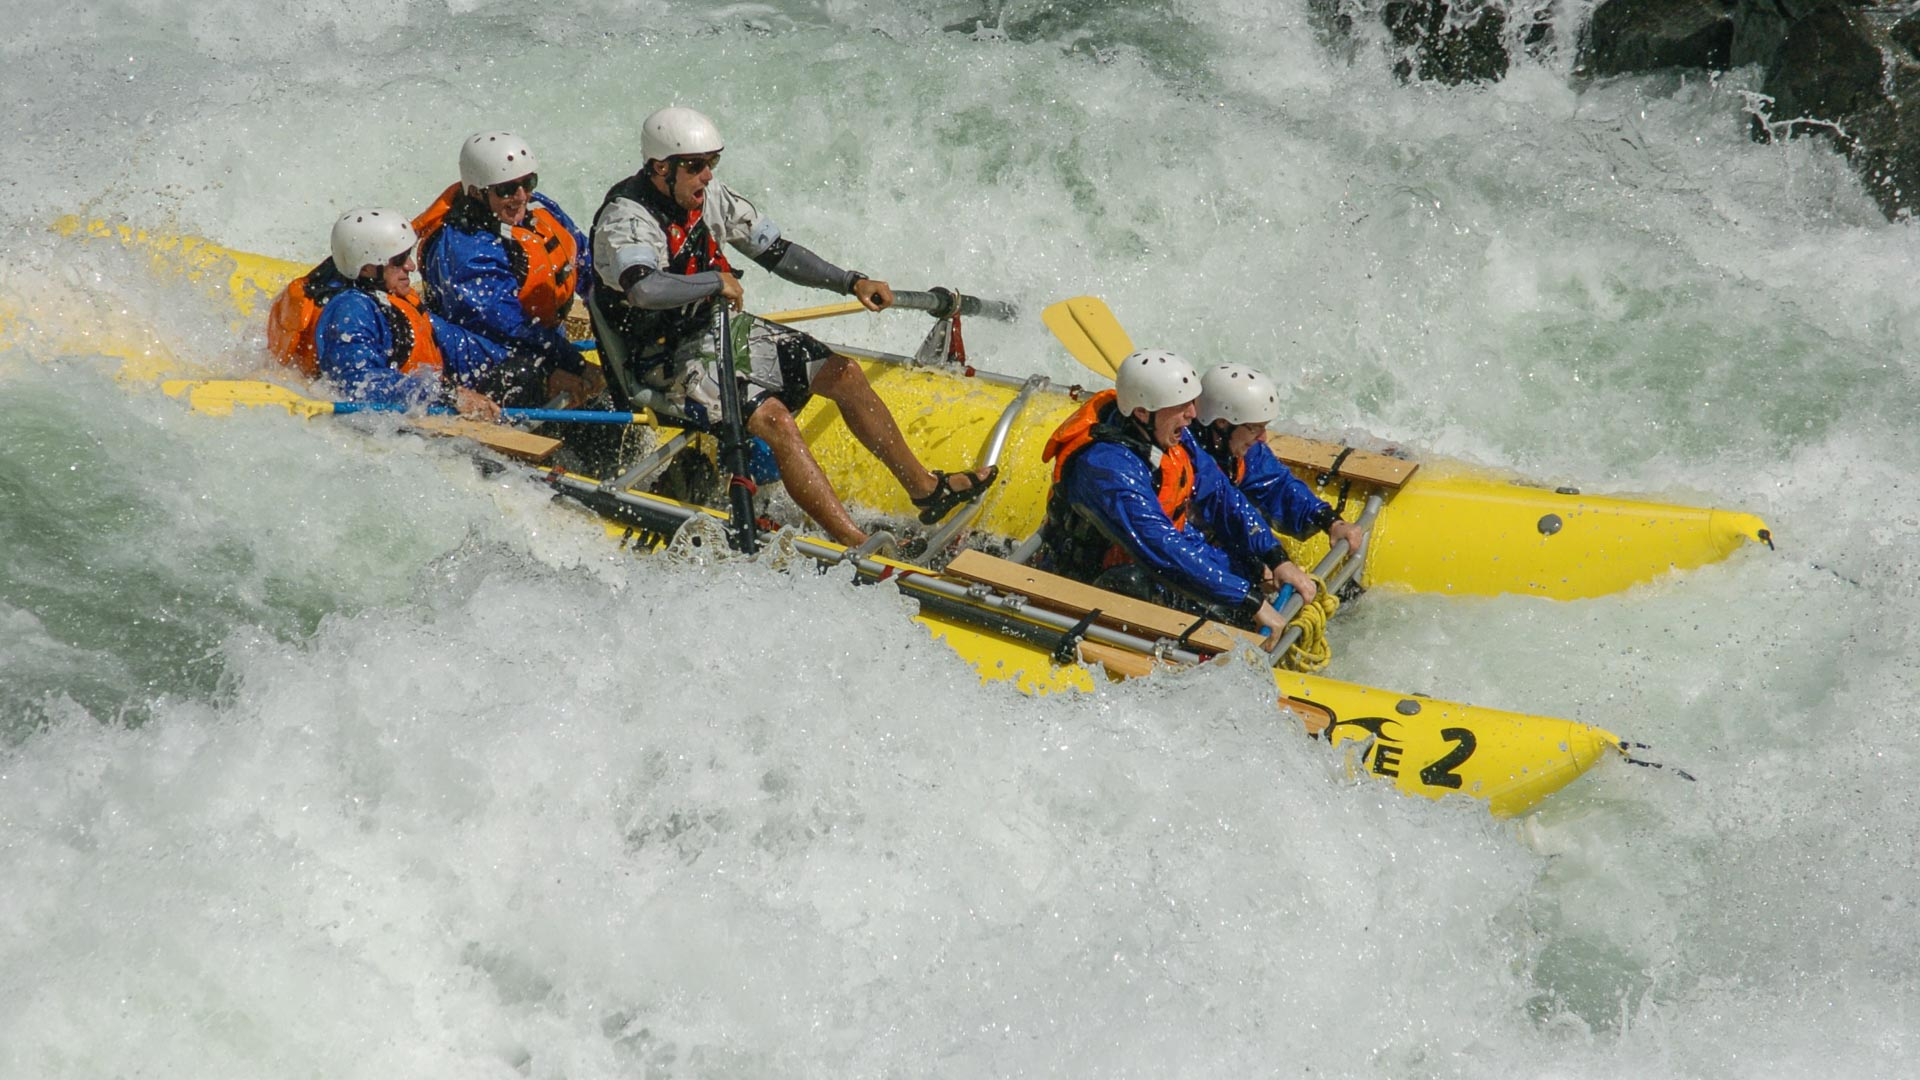 Rafting thrills in BC